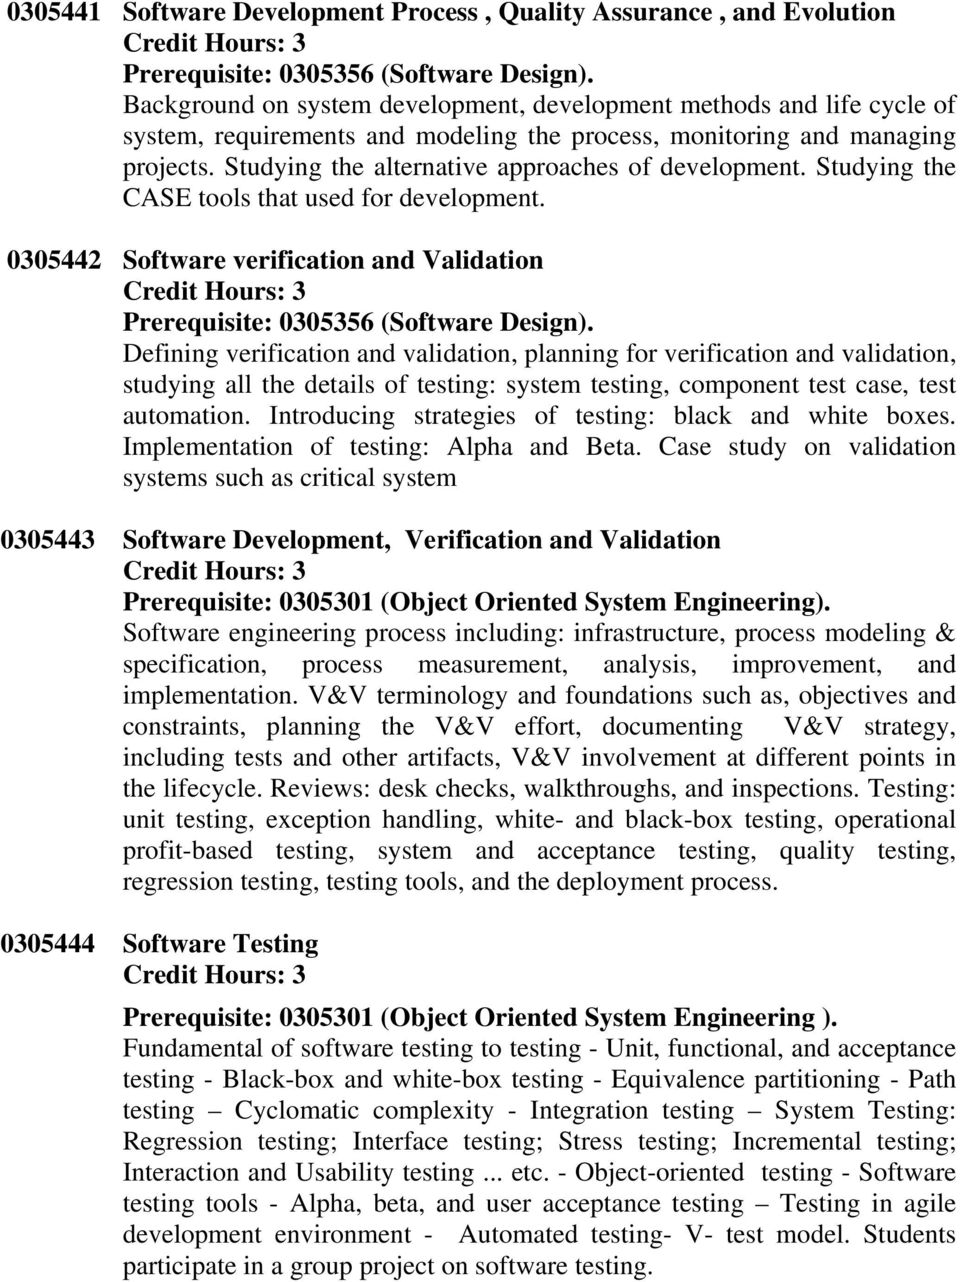 Software verification and Validation Defining verification and validation, planning for verification and validation, studying all the details of testing: system testing, component test case, test